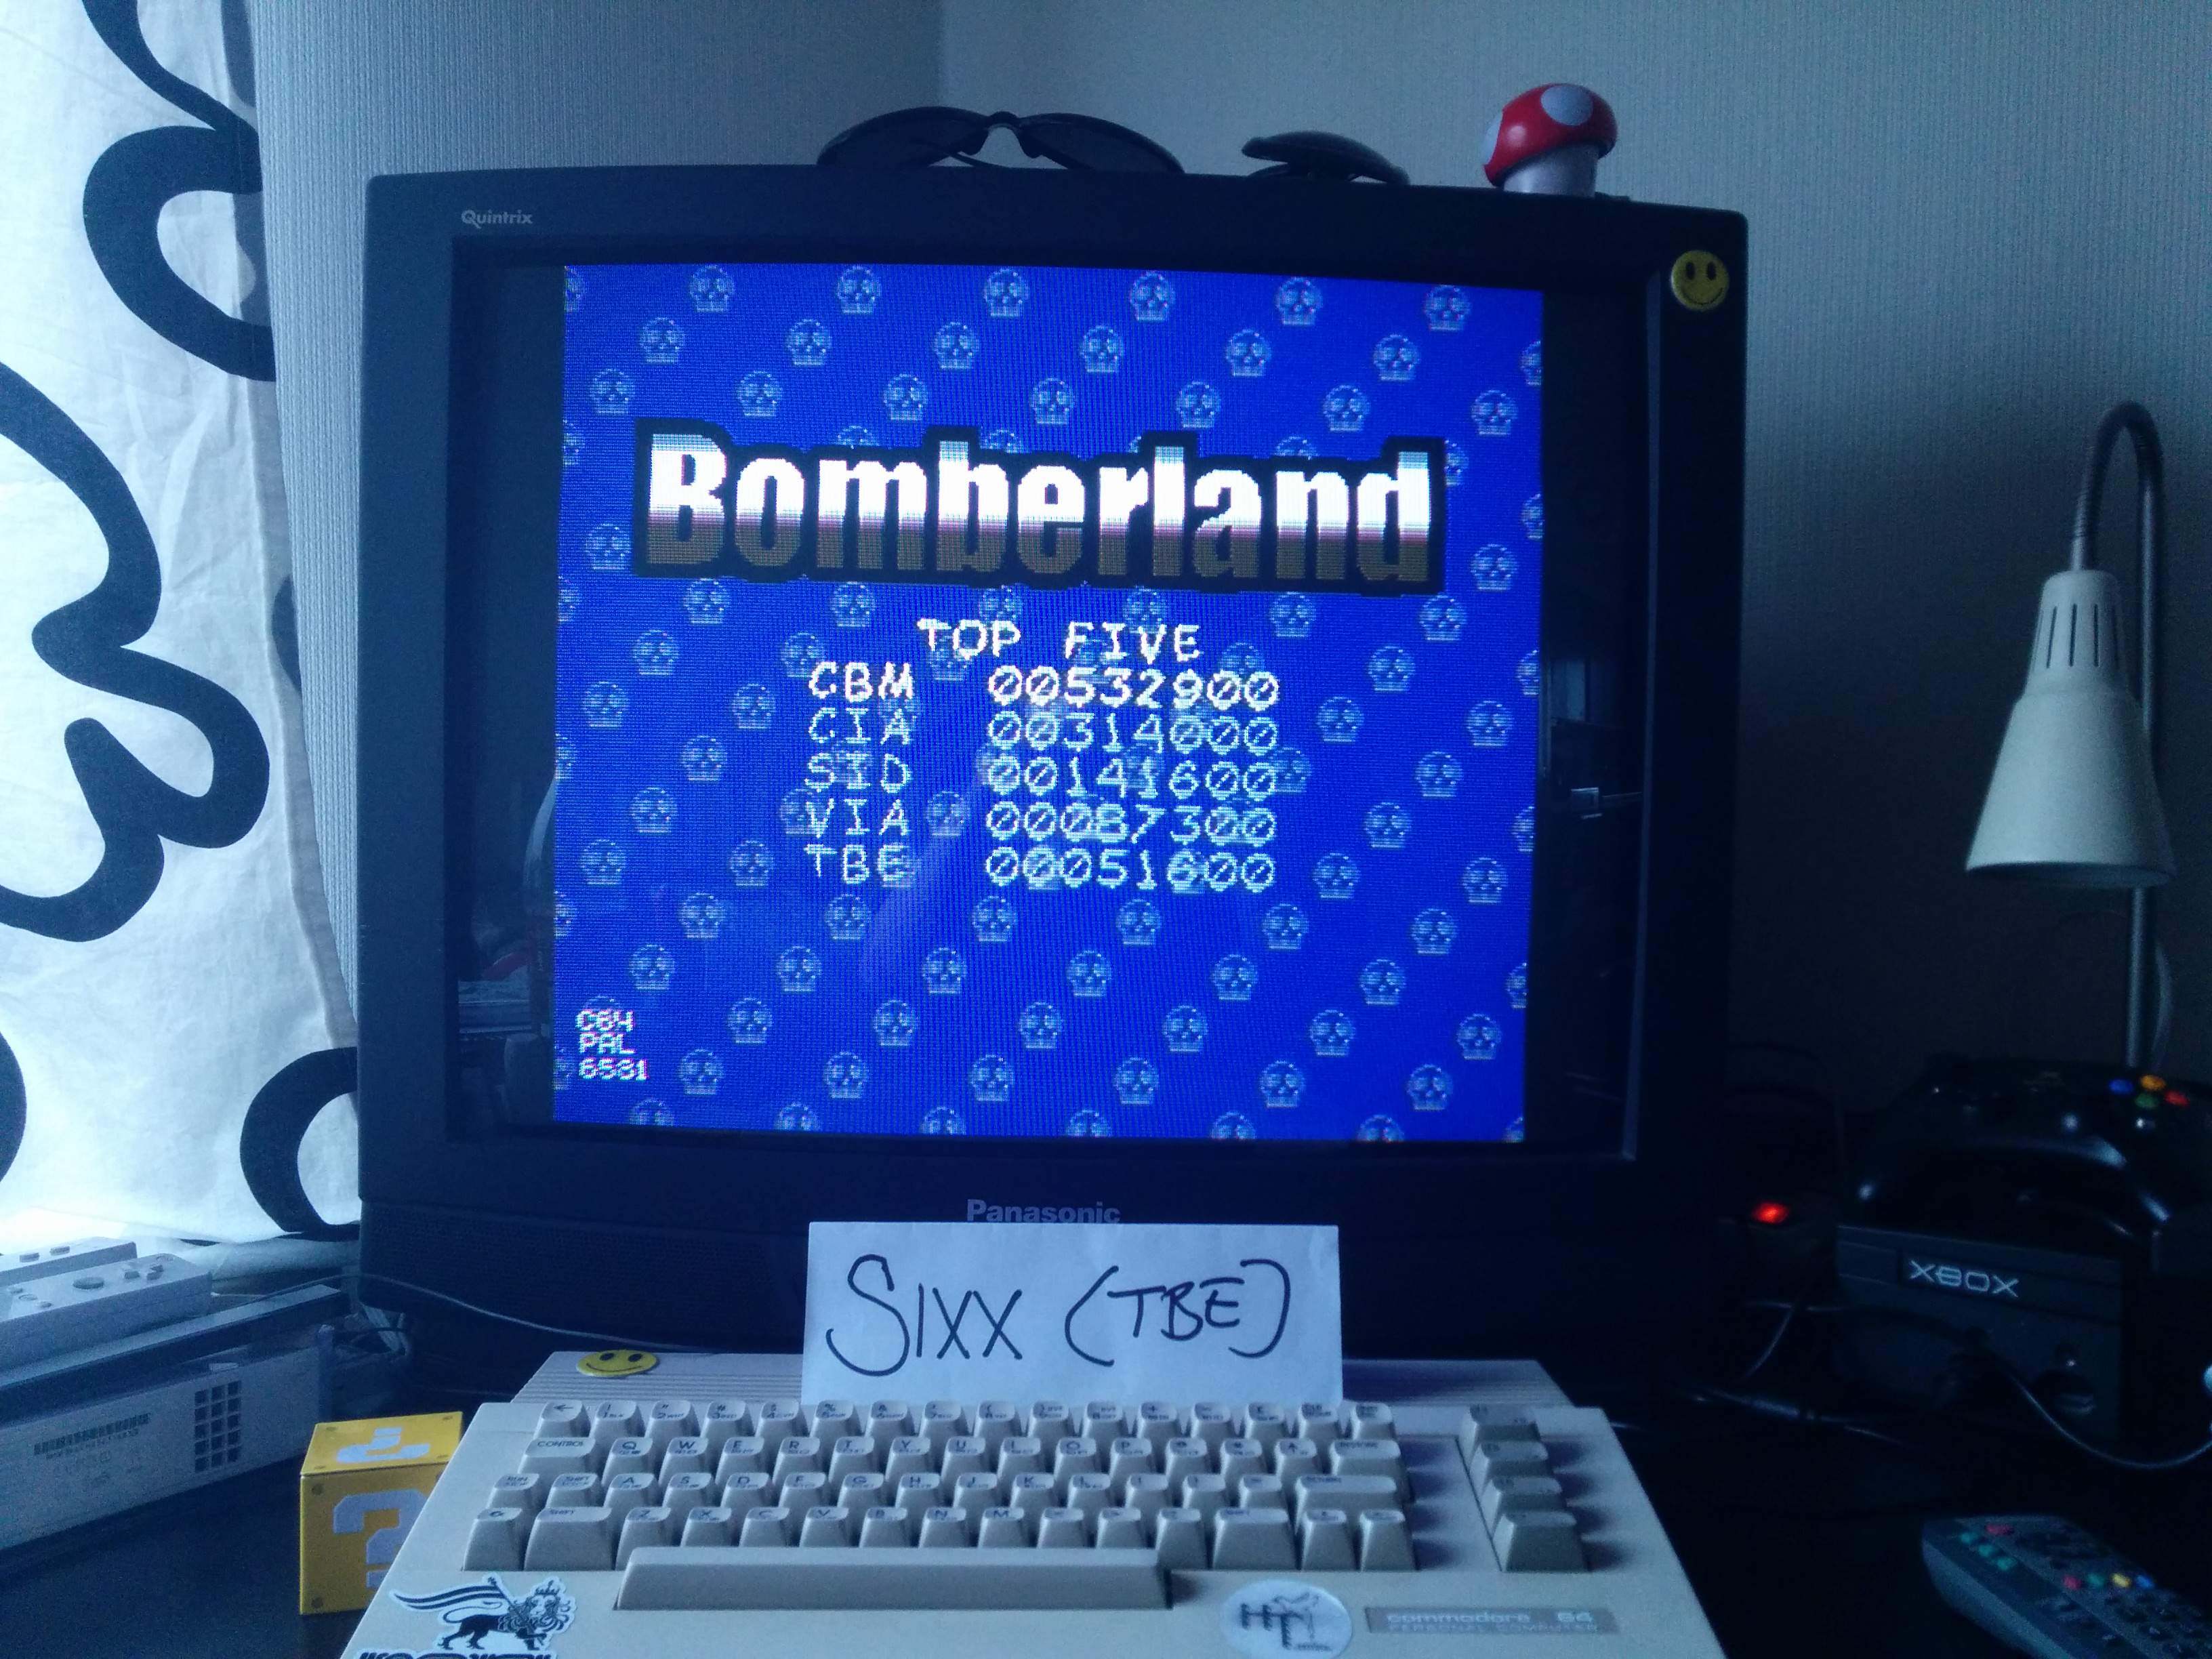 Bomberland 51,600 points